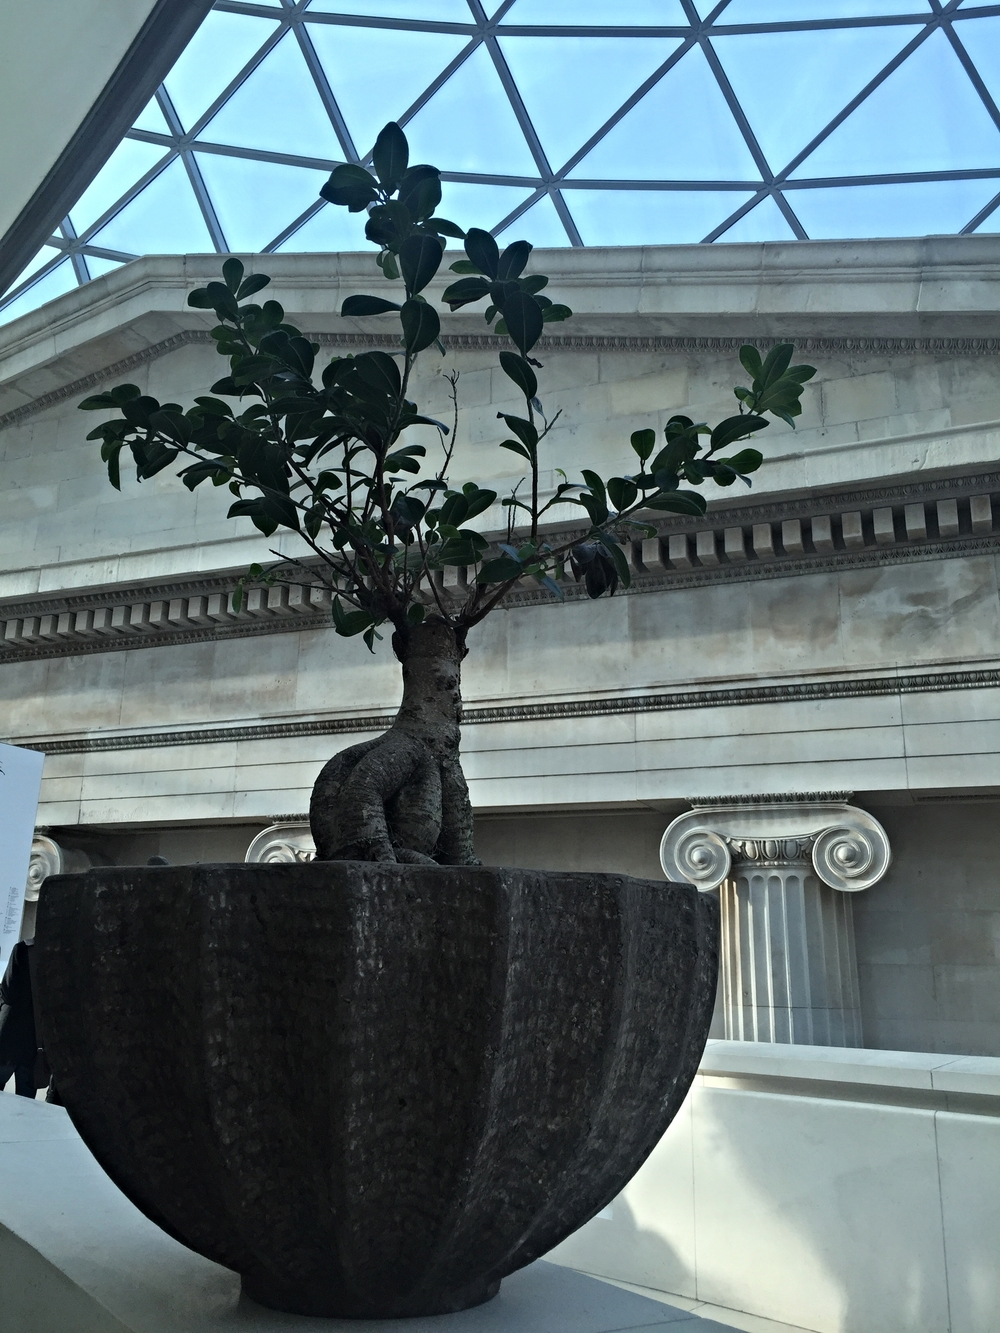 Something about this juxtaposition of nature, art, architecture, and light/space captured my attention as I sat for afternoon tea at the British Museum.